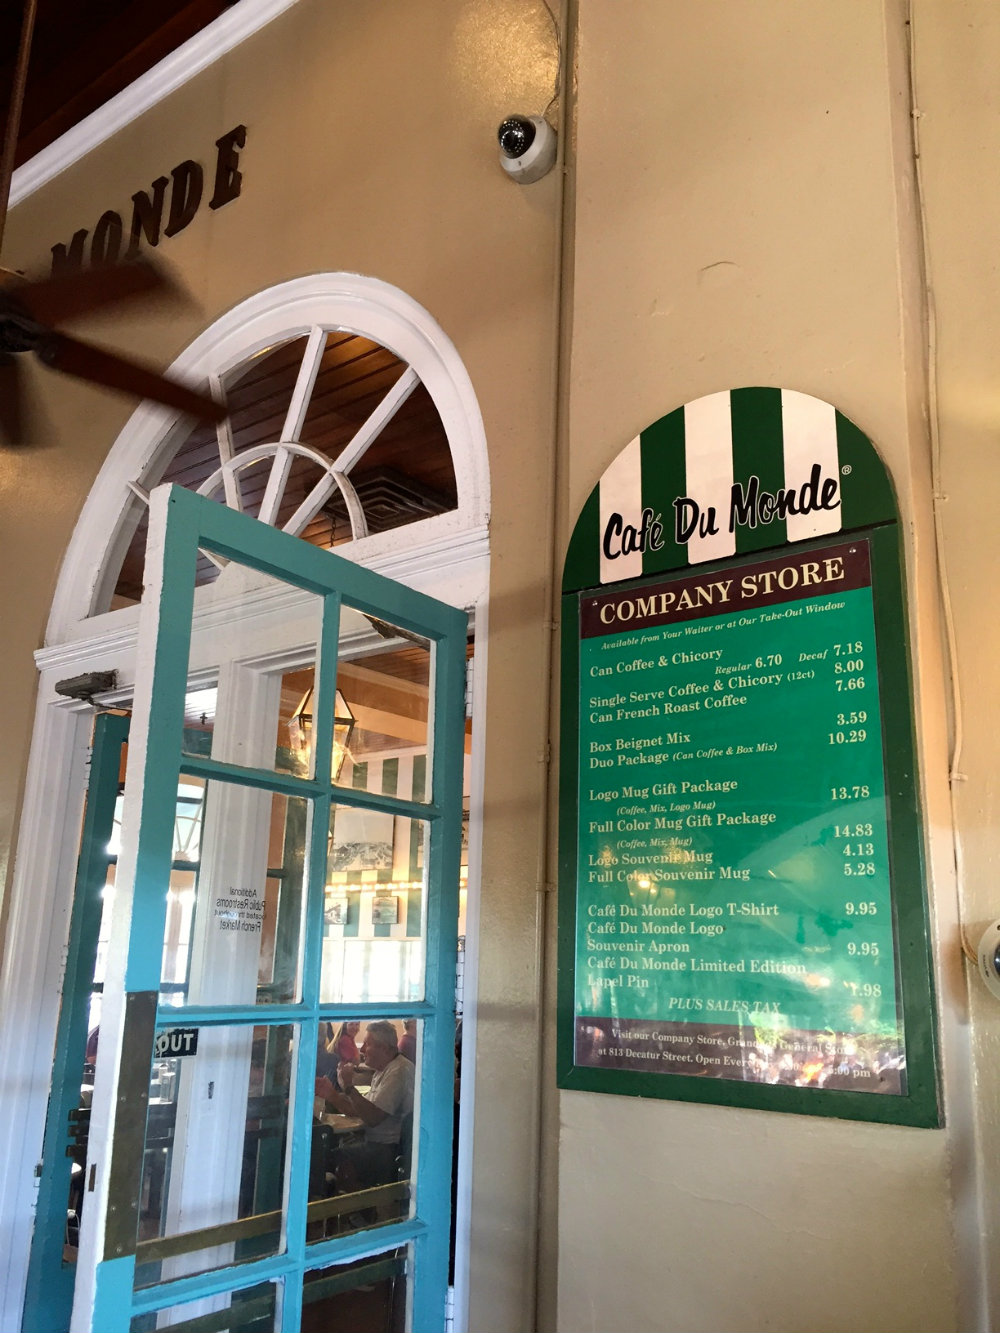 Eating beignets at Cafe du Monde in the French Quarter in New Orleans.